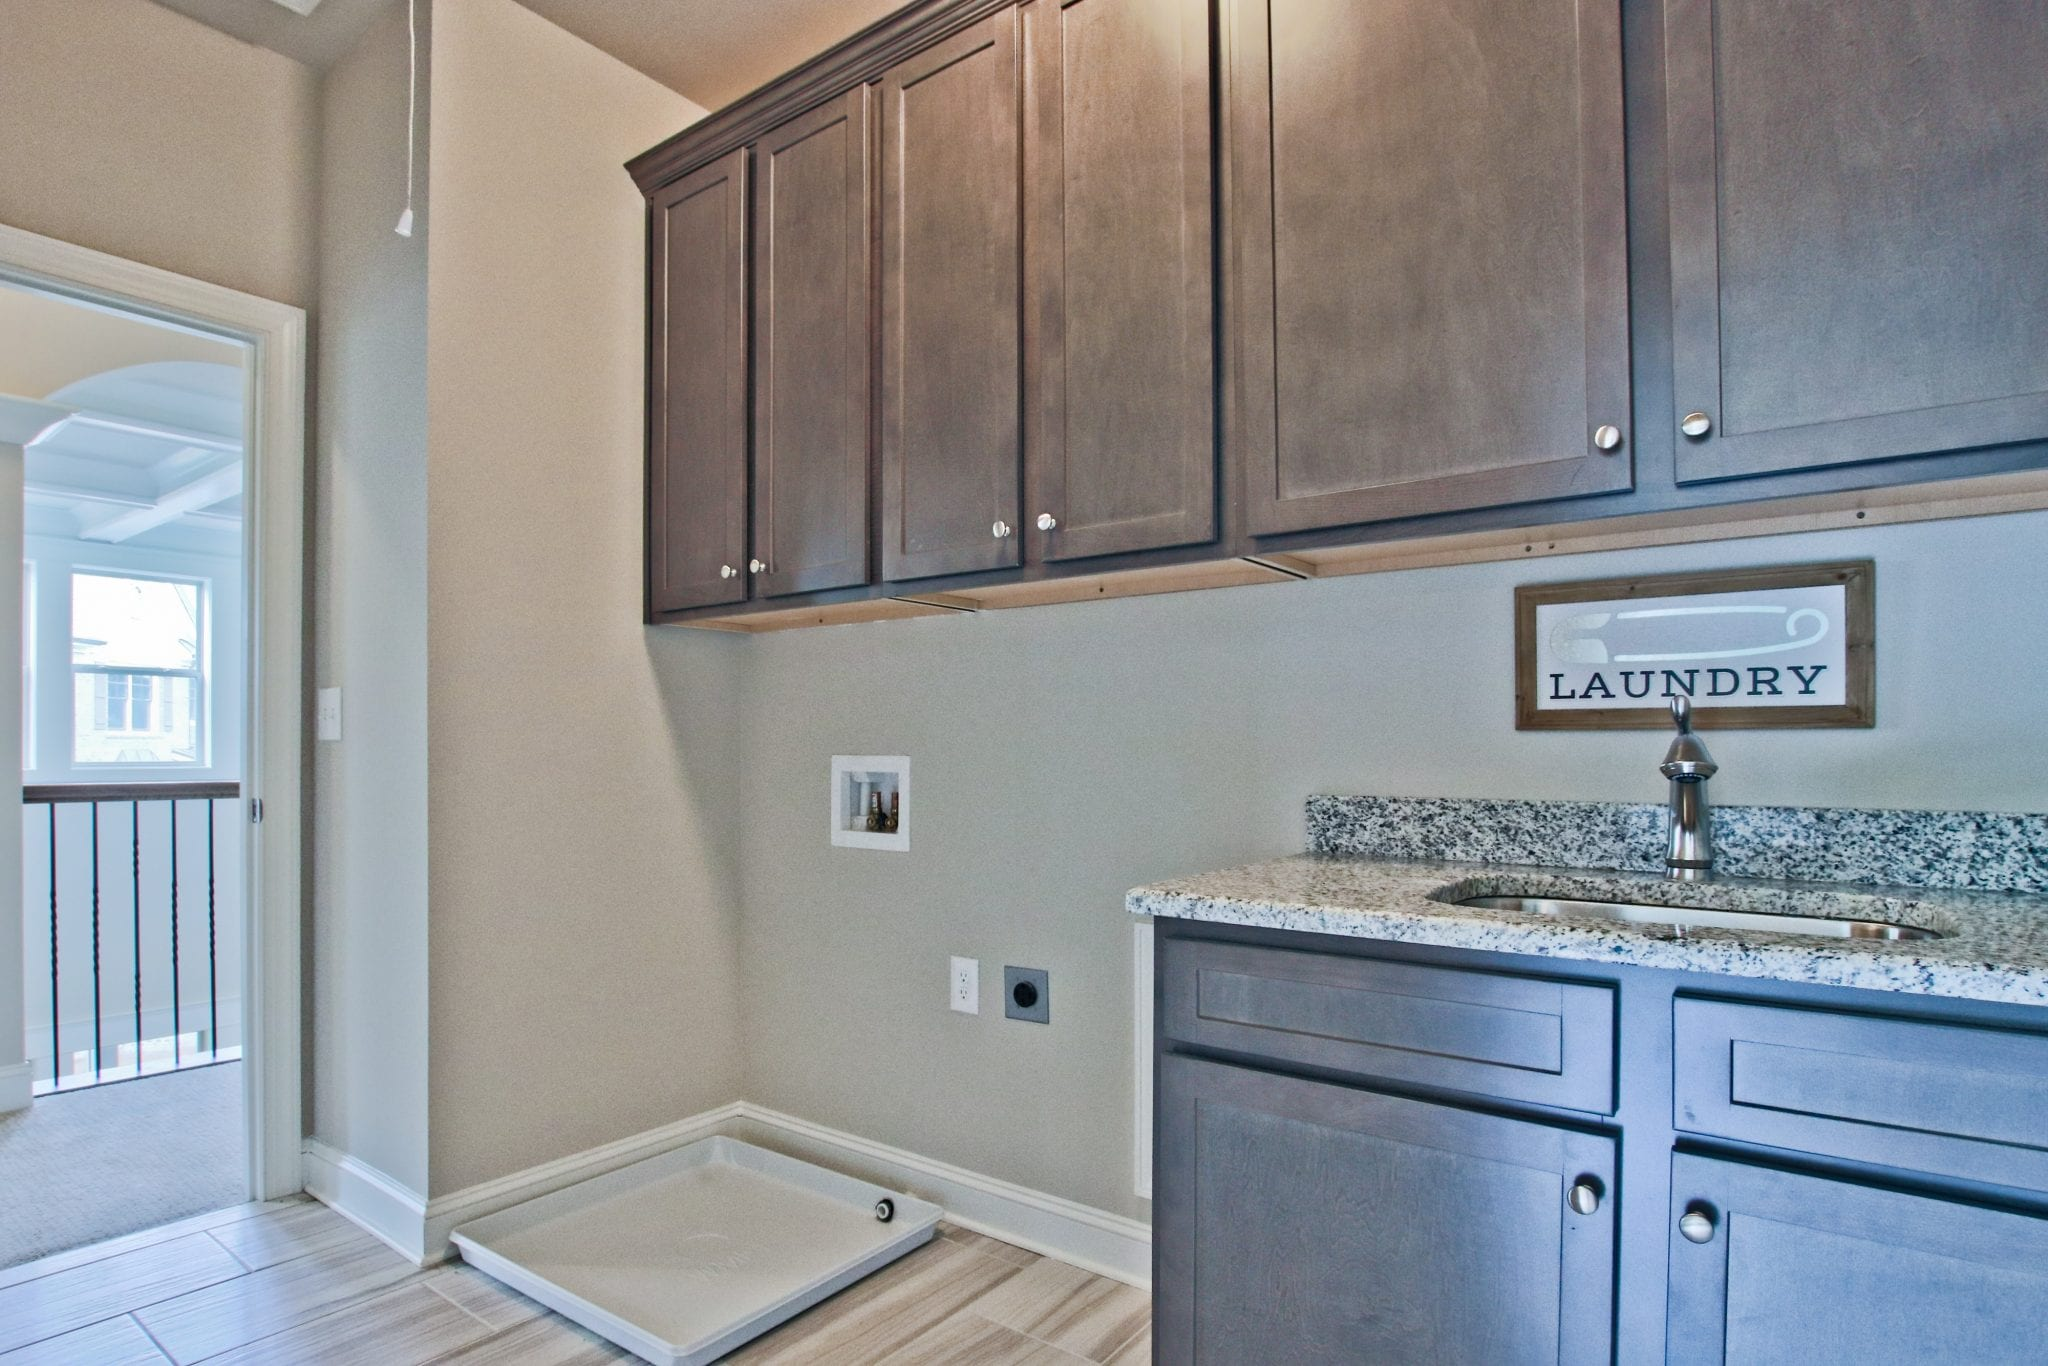 Laundry Rooms - Chafin Communities